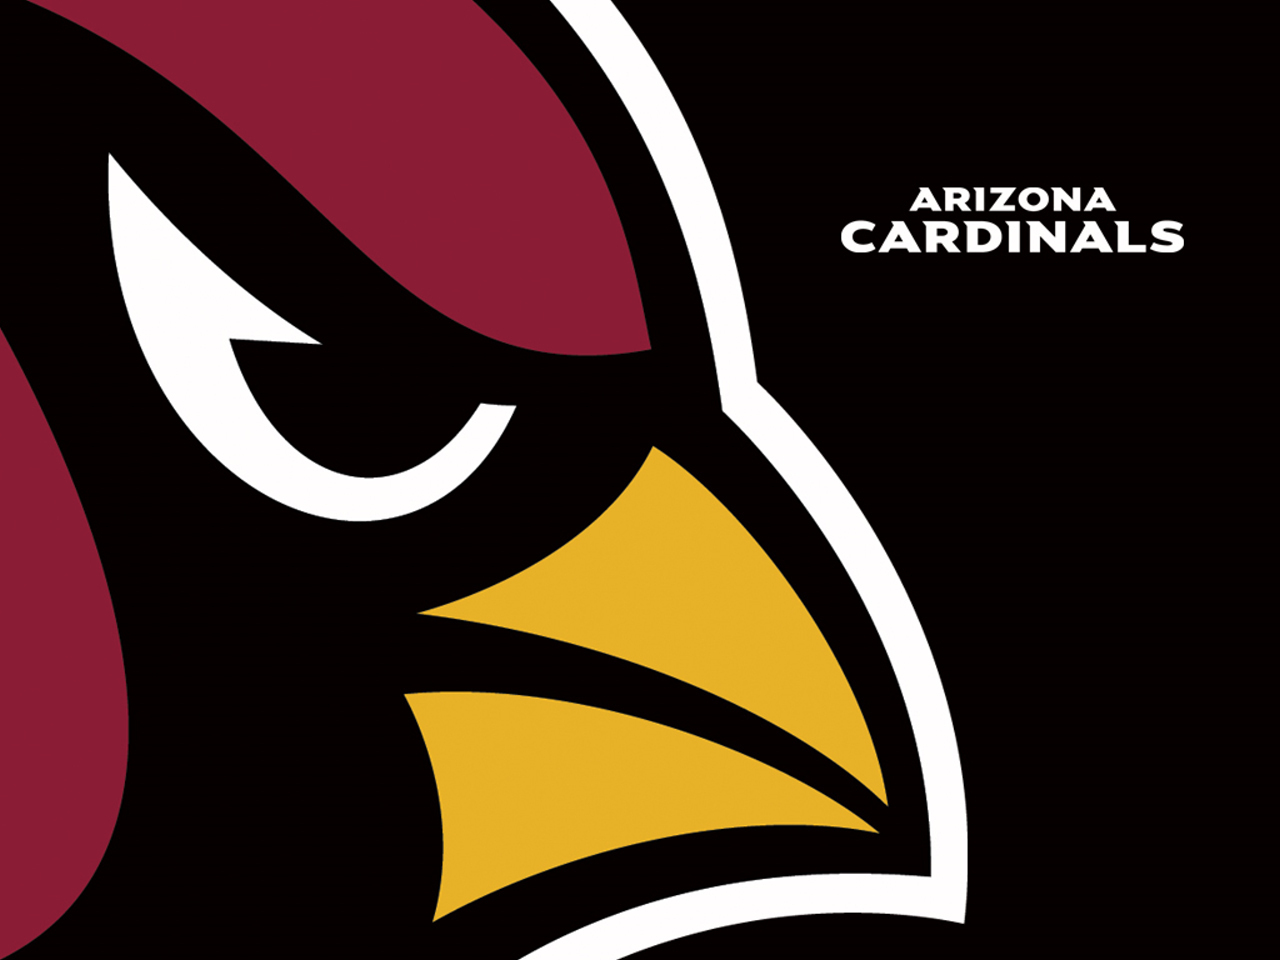 Nfl screensavers wallpapers wallpapersafari - Arizona cardinals screensaver free ...